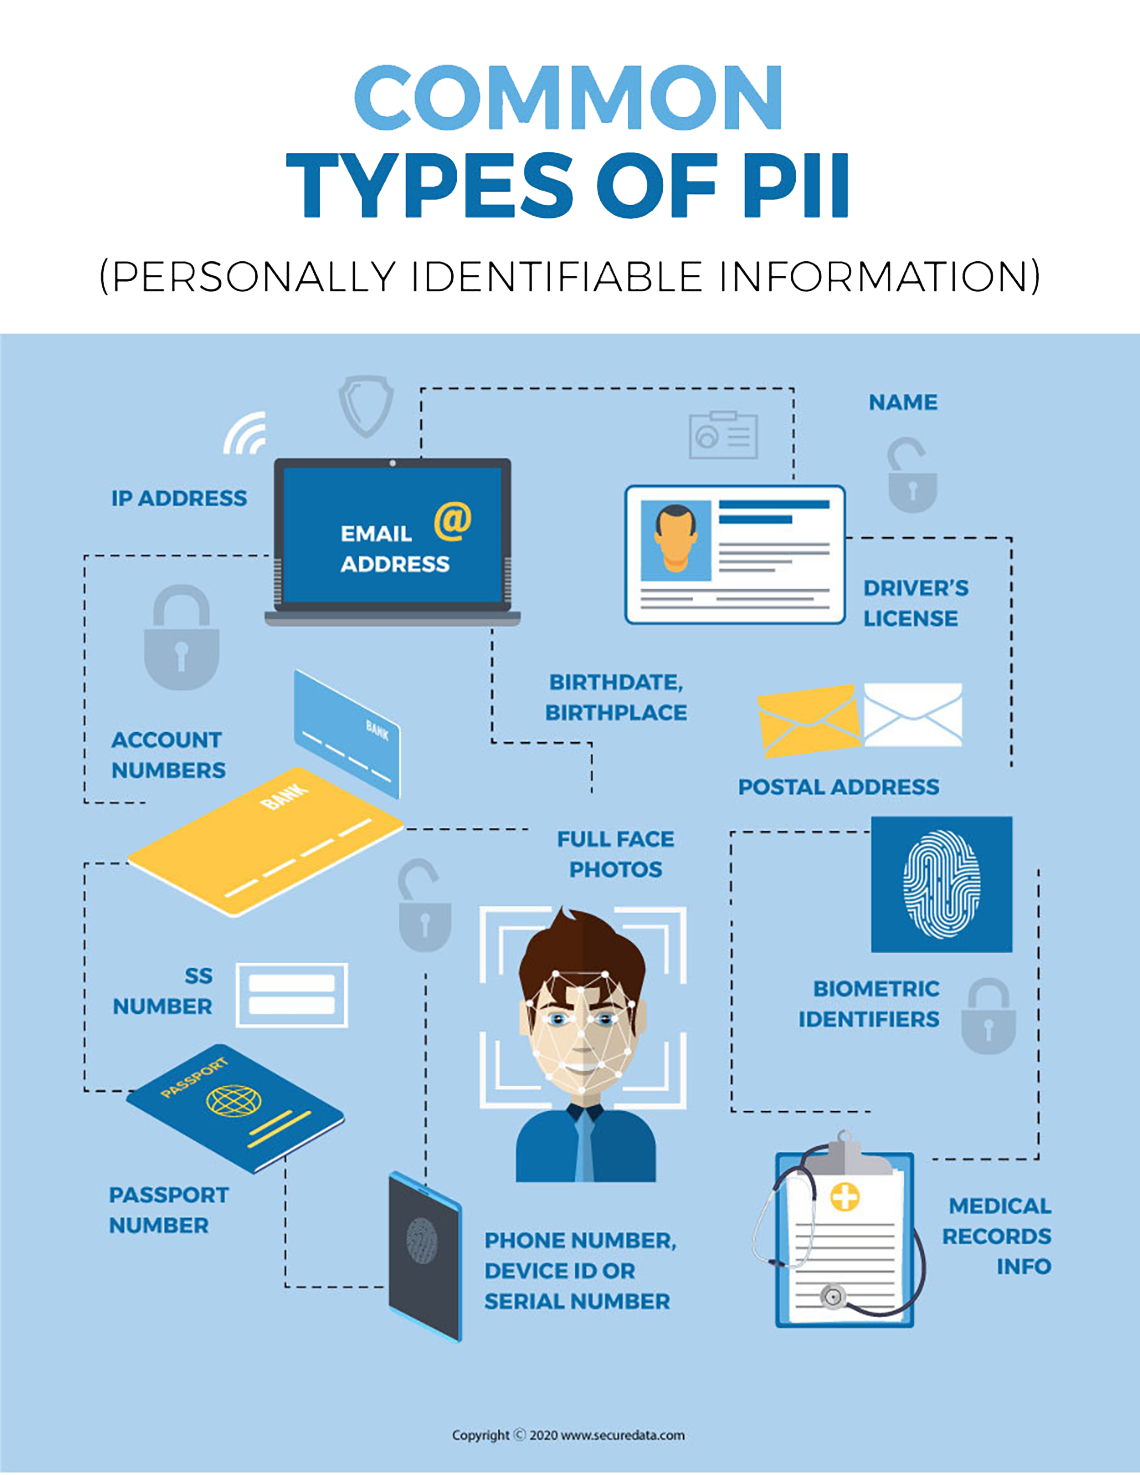 What is PHII Personally Identifiable Information?